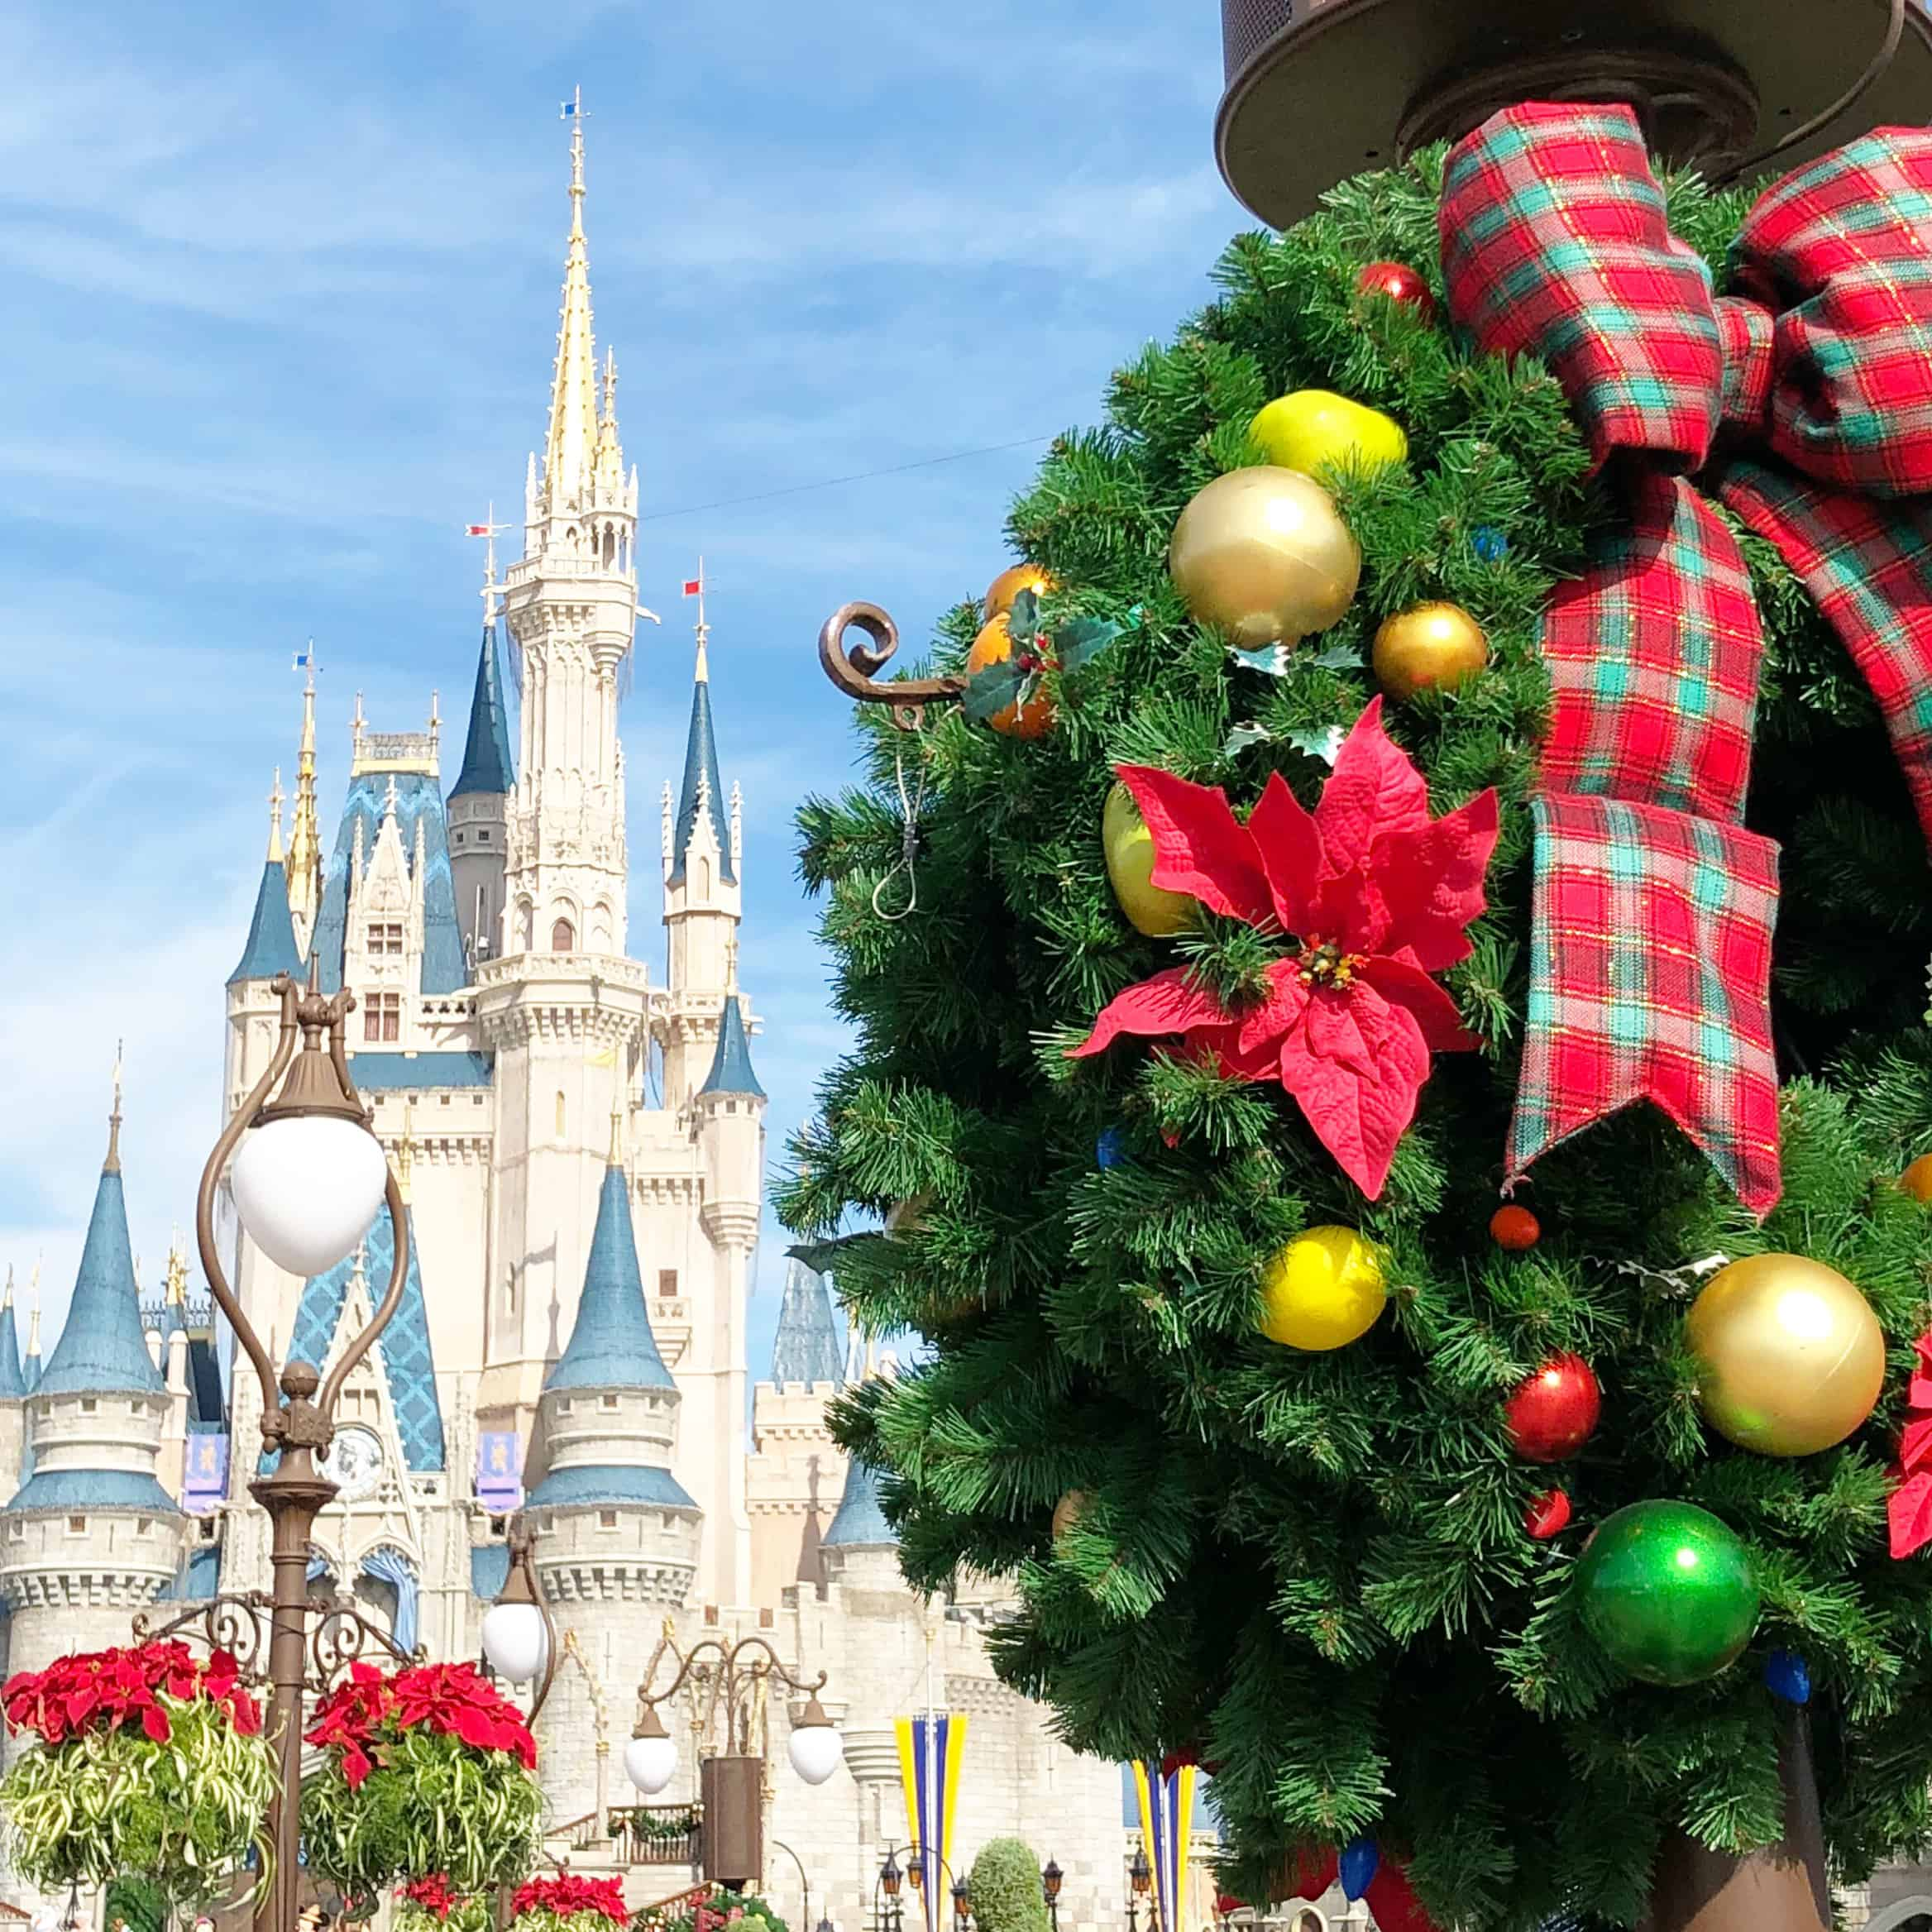 christmas decorations in addition to all of the tiny details that you can easily overlook on any given day read the windows look at the displays - Disney World Christmas Decorations 2017